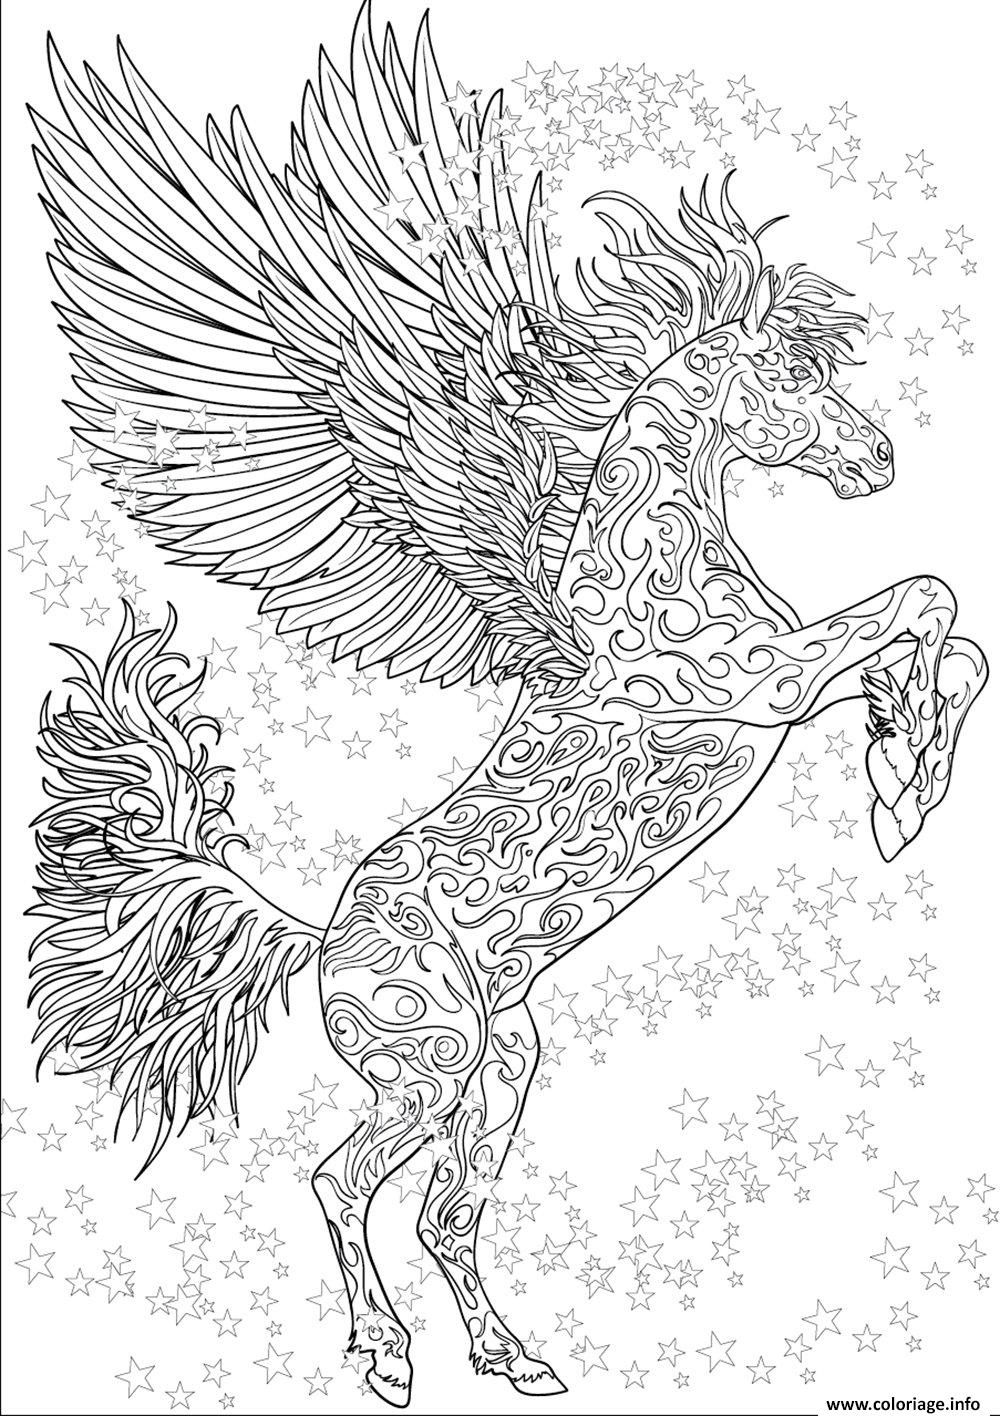 Coloriage Adulte Cheval.Coloriage Cheval Adulte Licorne Ailes Antistress Etoiles Dessin A